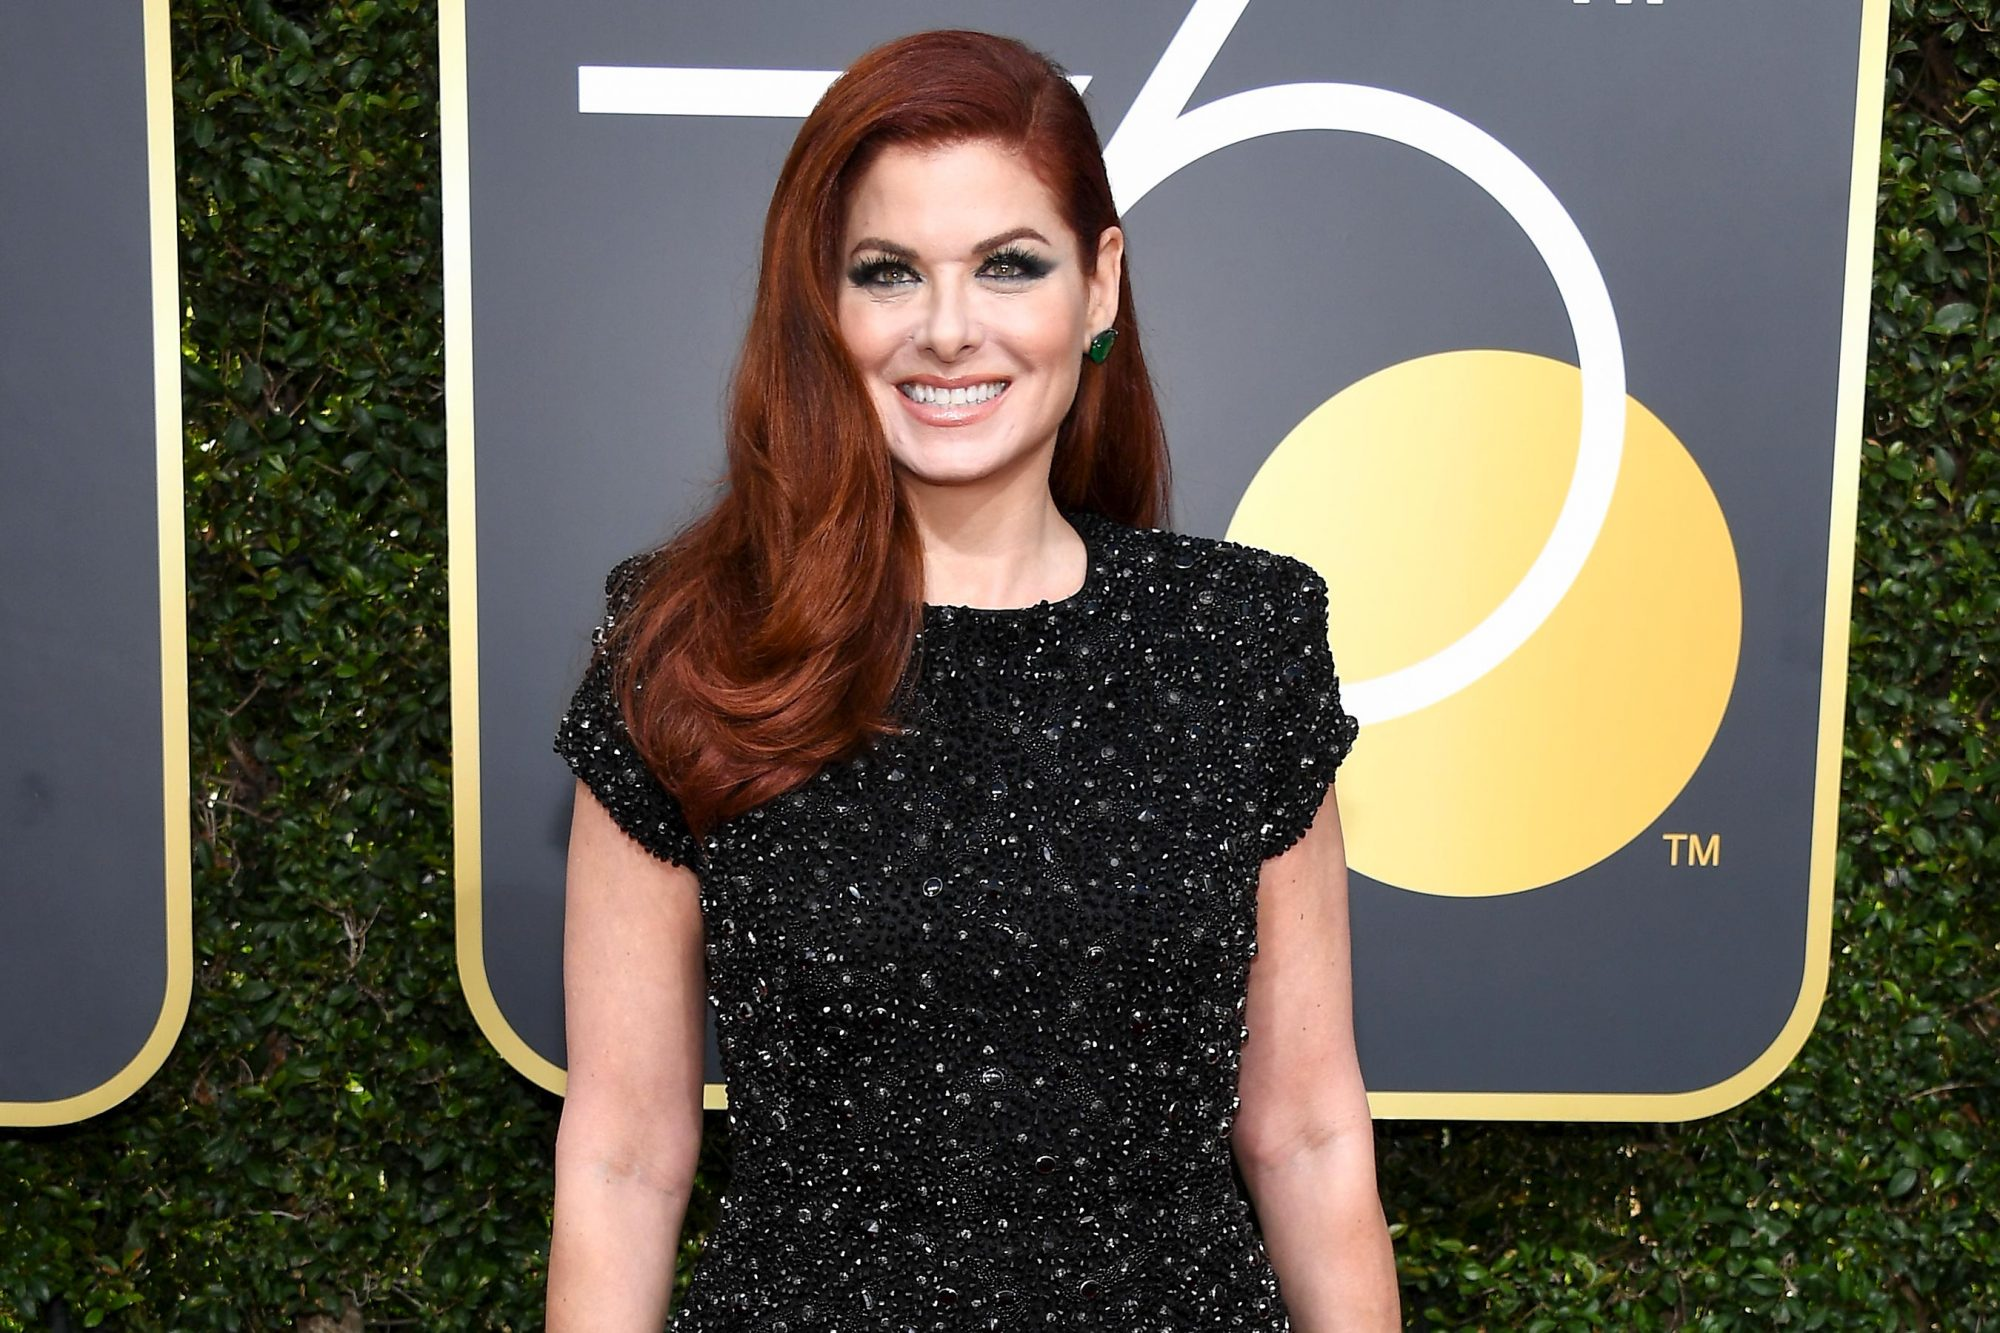 BEVERLY HILLS, CA - JANUARY 07: 75th ANNUAL GOLDEN GLOBE AWARDS -- Pictured: Actor Debra Messing arrives to the 75th Annual Golden Globe Awards held at the Beverly Hilton Hotel on January 7, 2018. (Photo by Kevork Djansezian/NBC/NBCU Photo Bank via Getty Images)